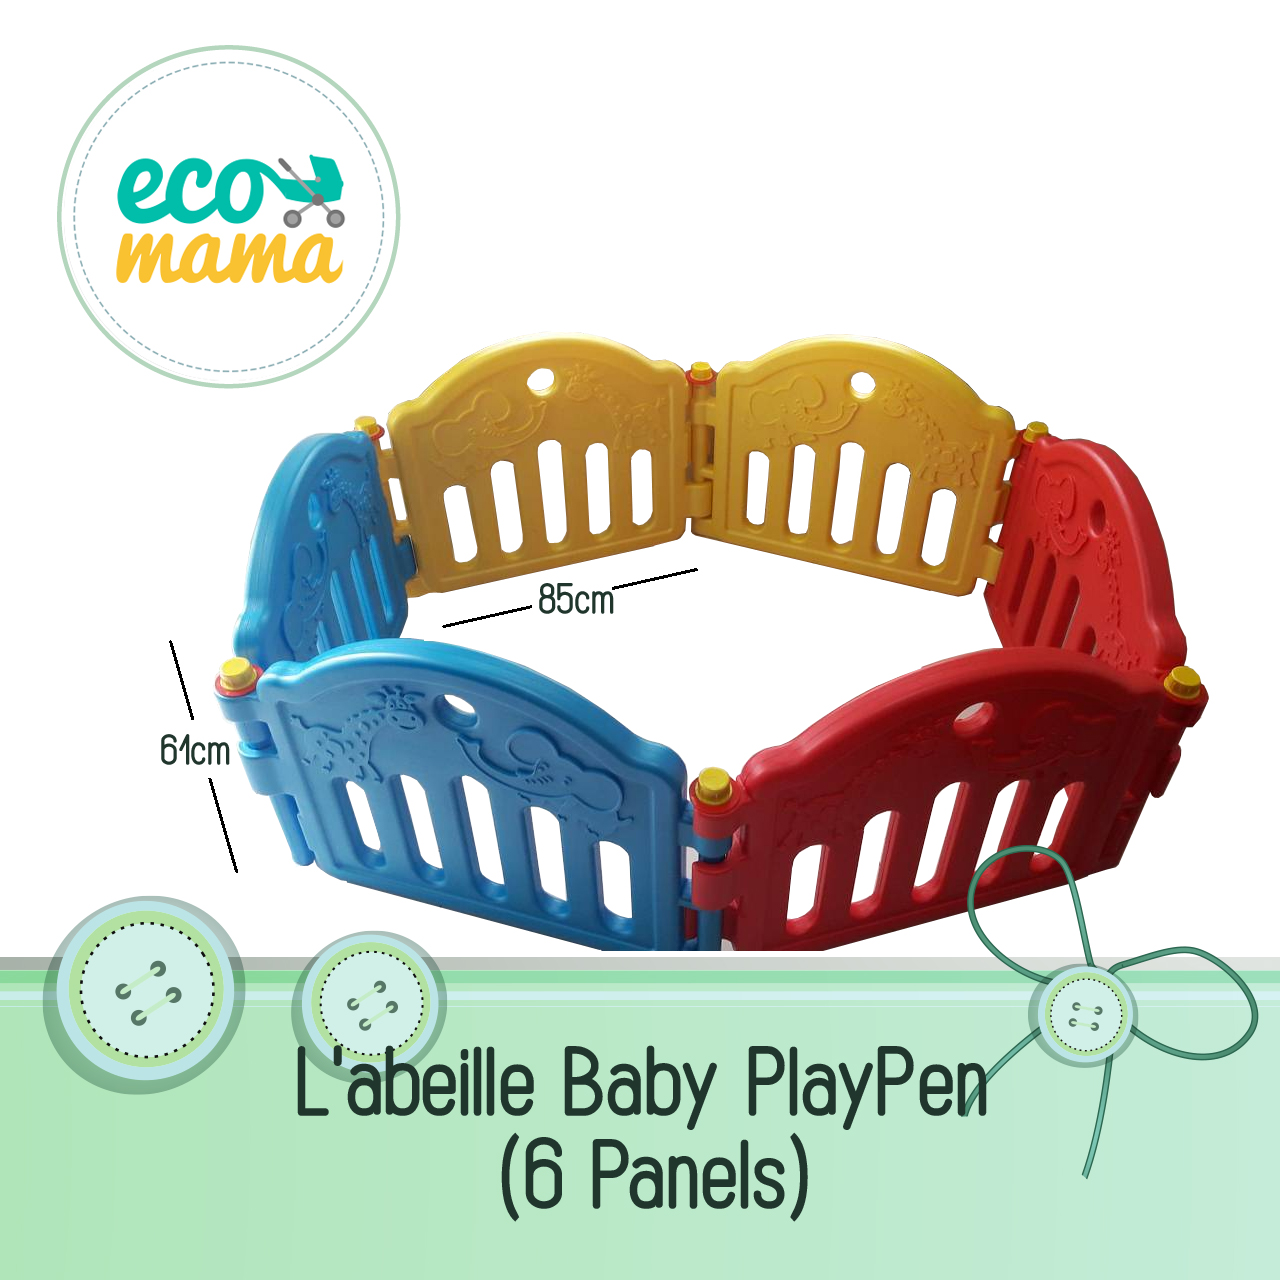 Labeille 6 Panel Playpen